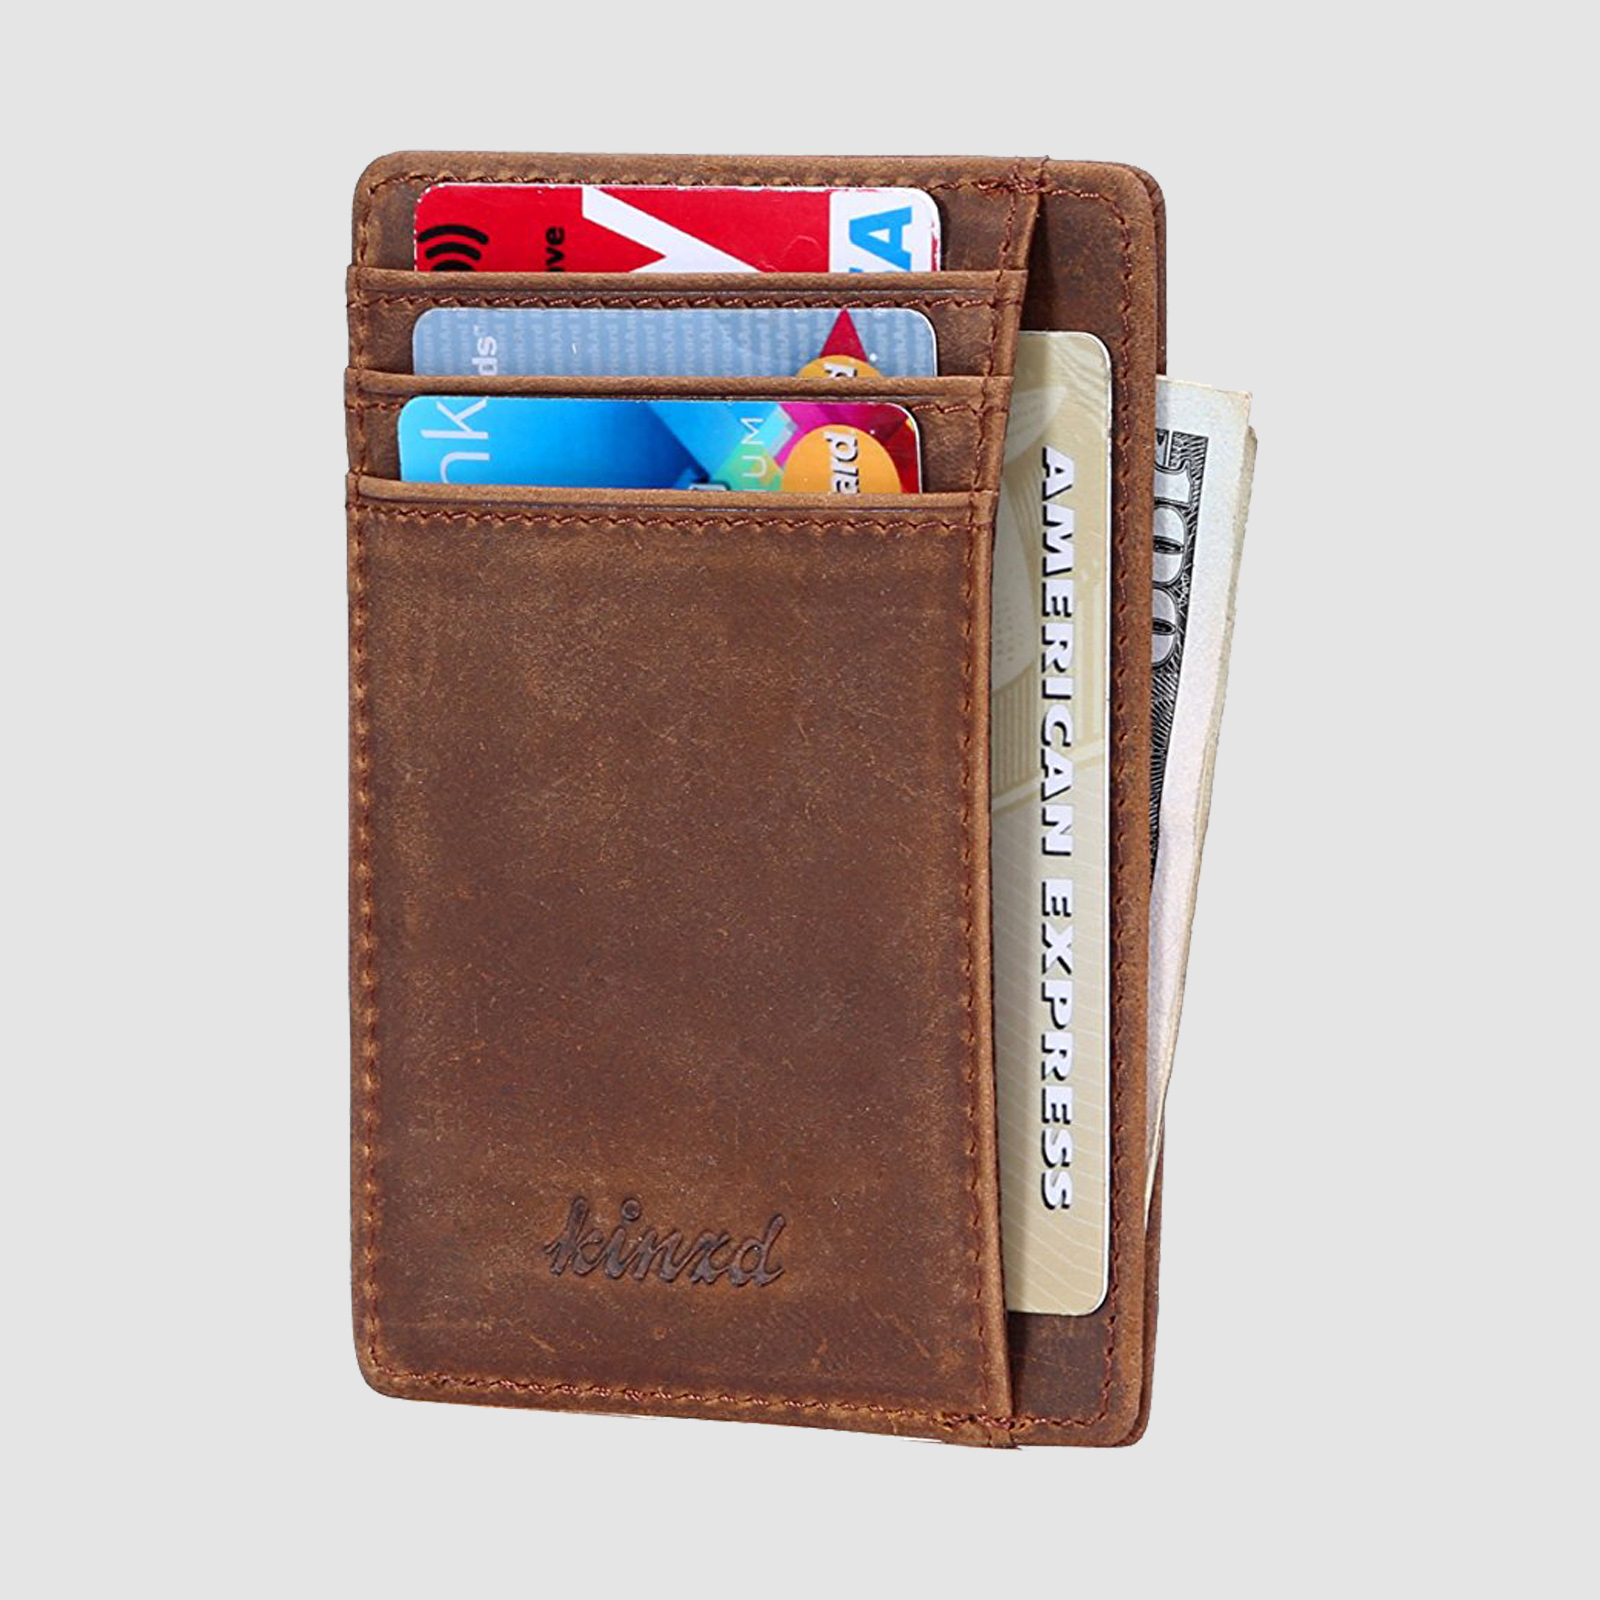 Kinzd Slim Wallet, $10 Amazon